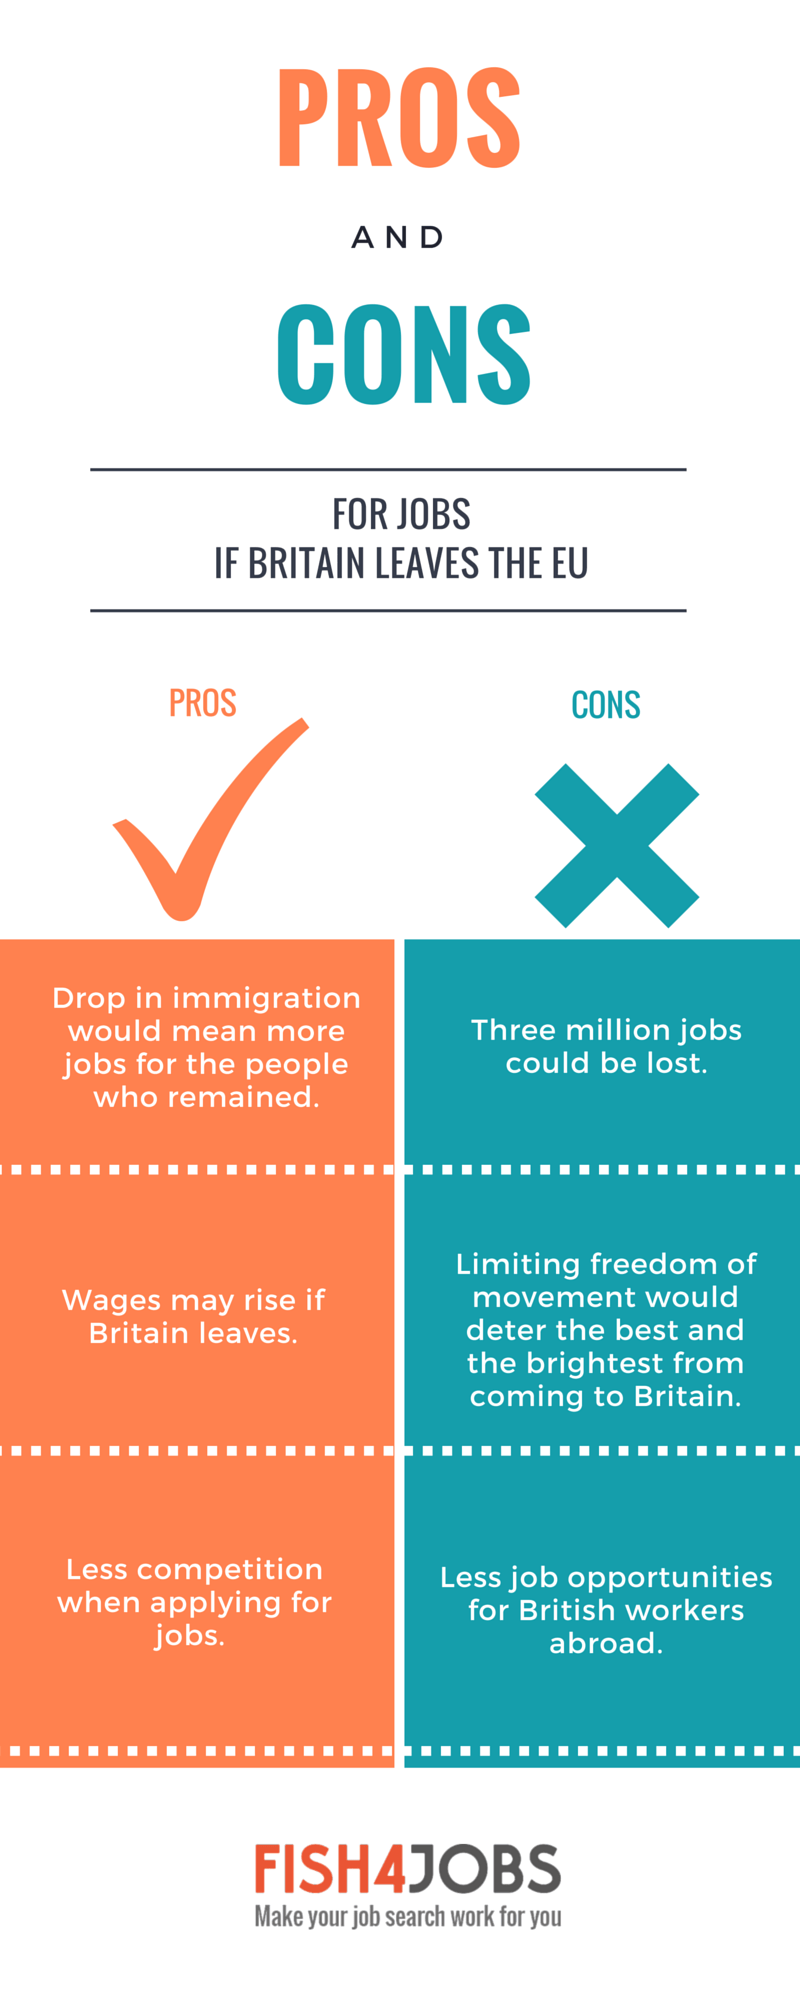 the pros and cons for jobs if britain leaves the eu